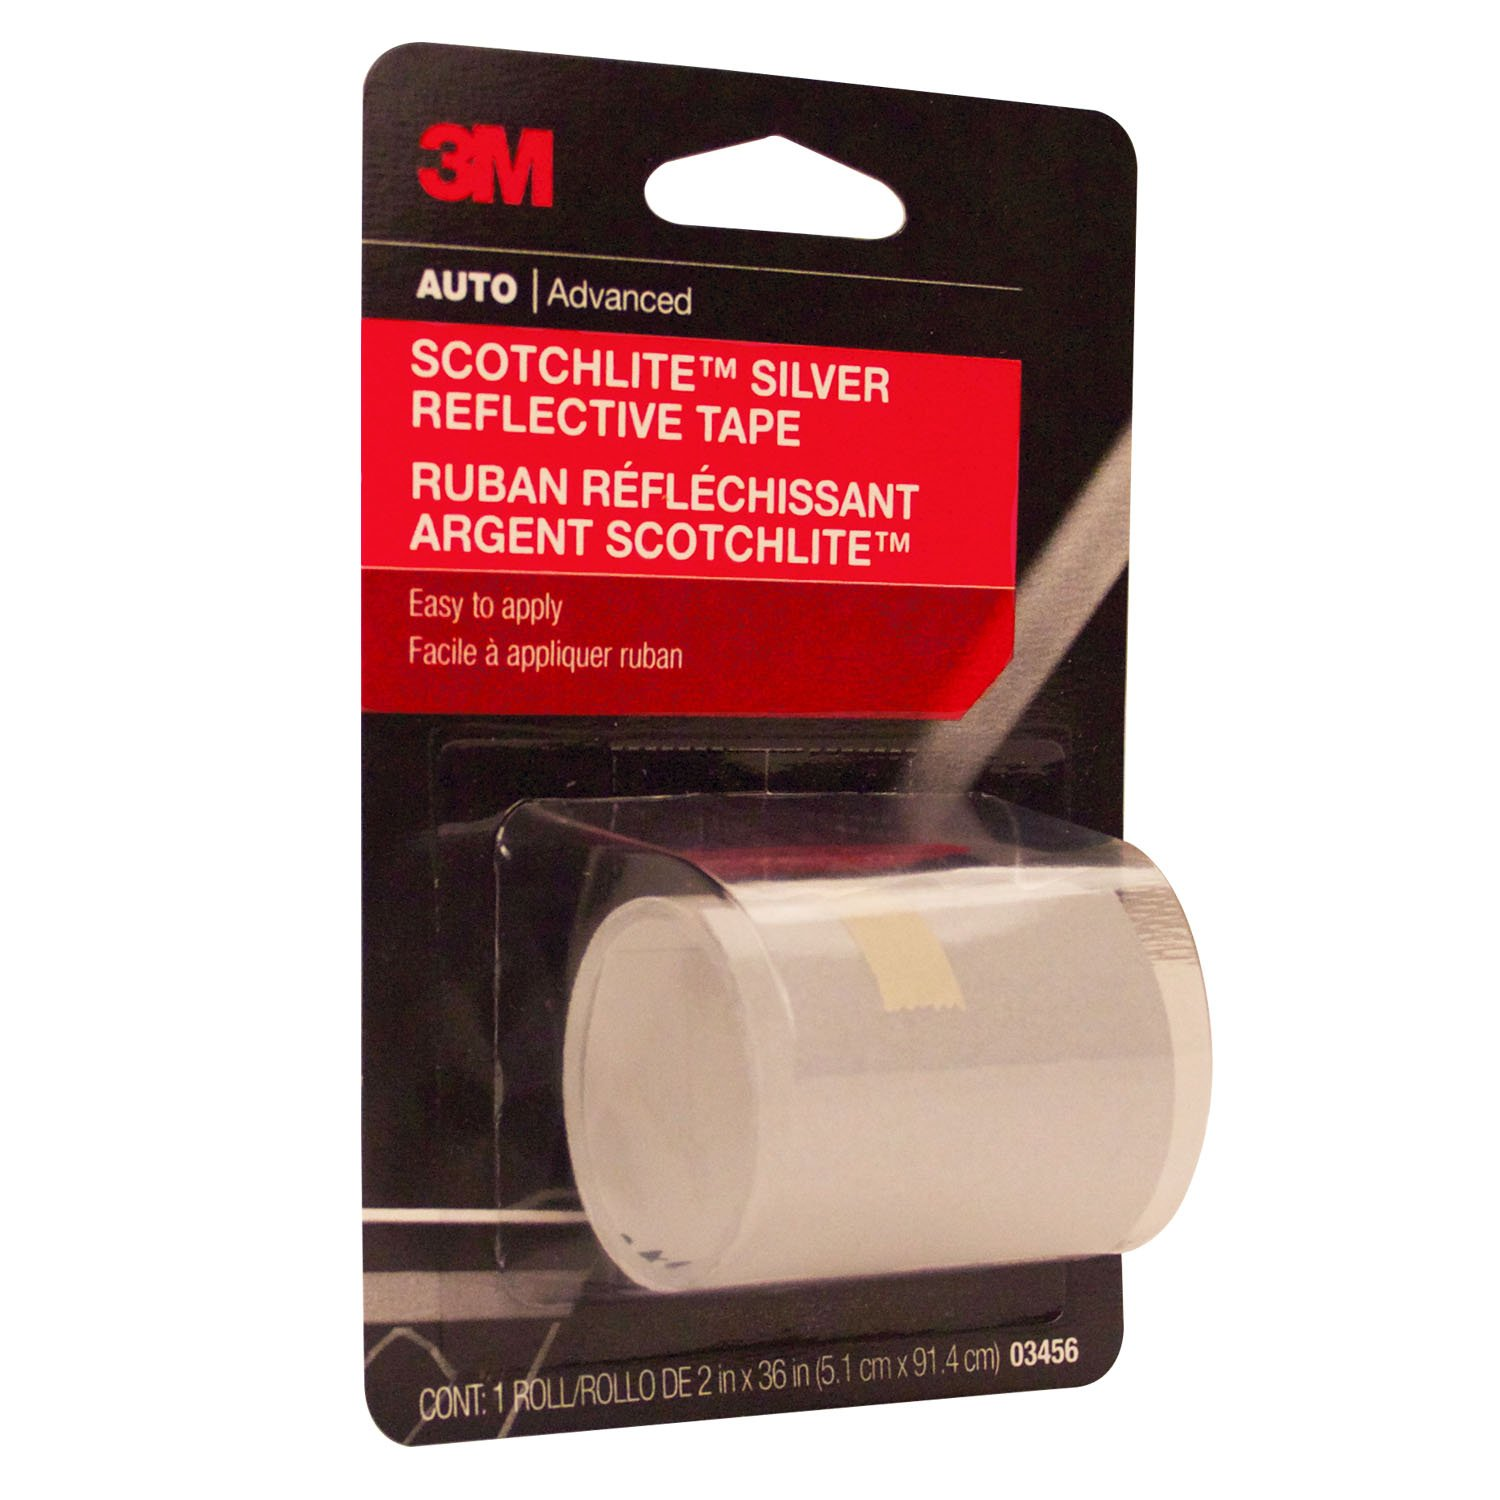 3M Scotchlite Reflective Tape Silver 2 Inch by 36 Inch